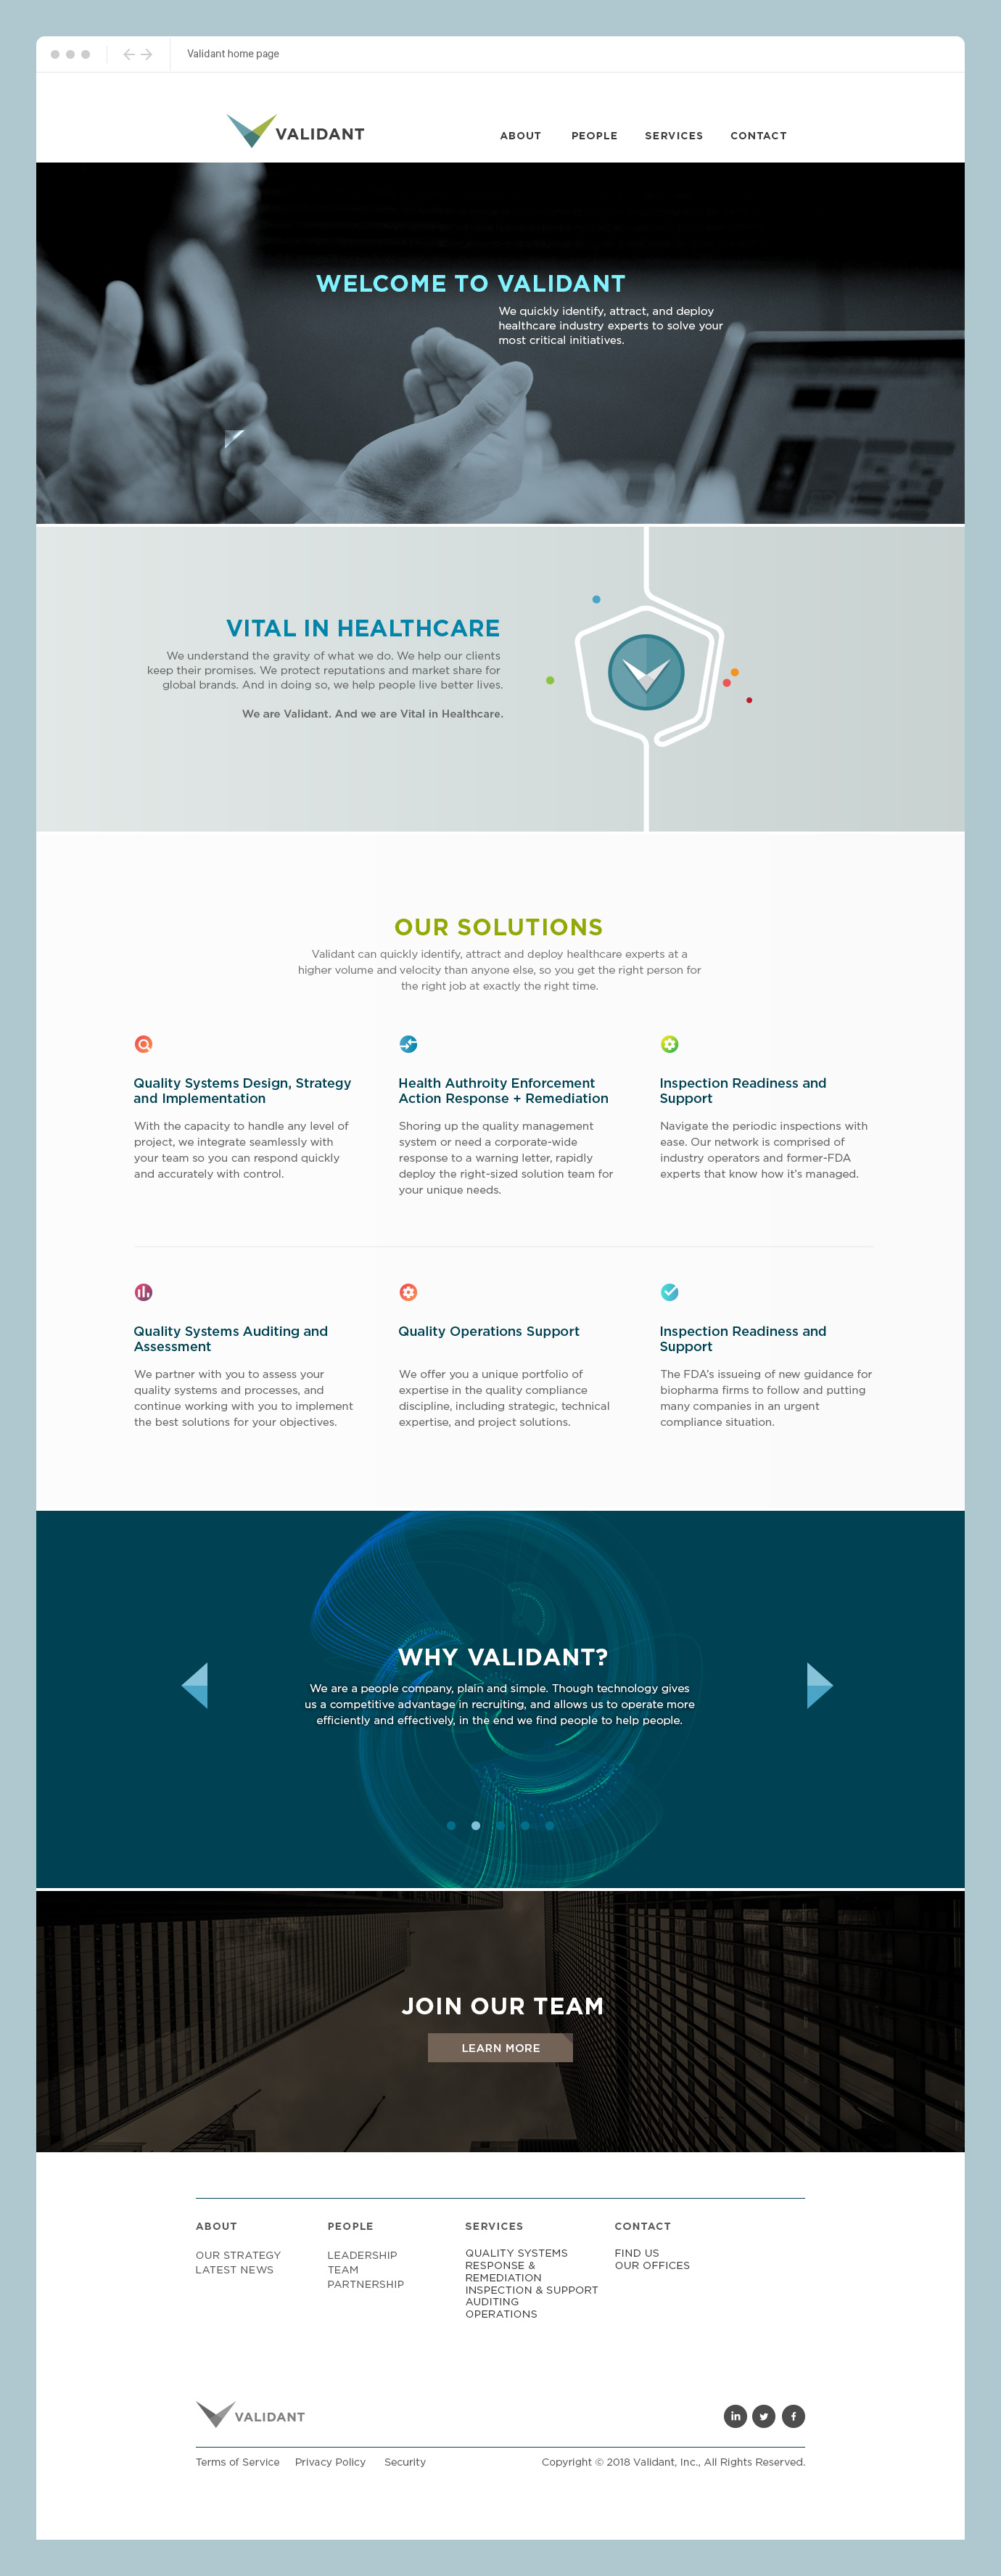 Validant_website_redesign1a_w_browser1a.jpg